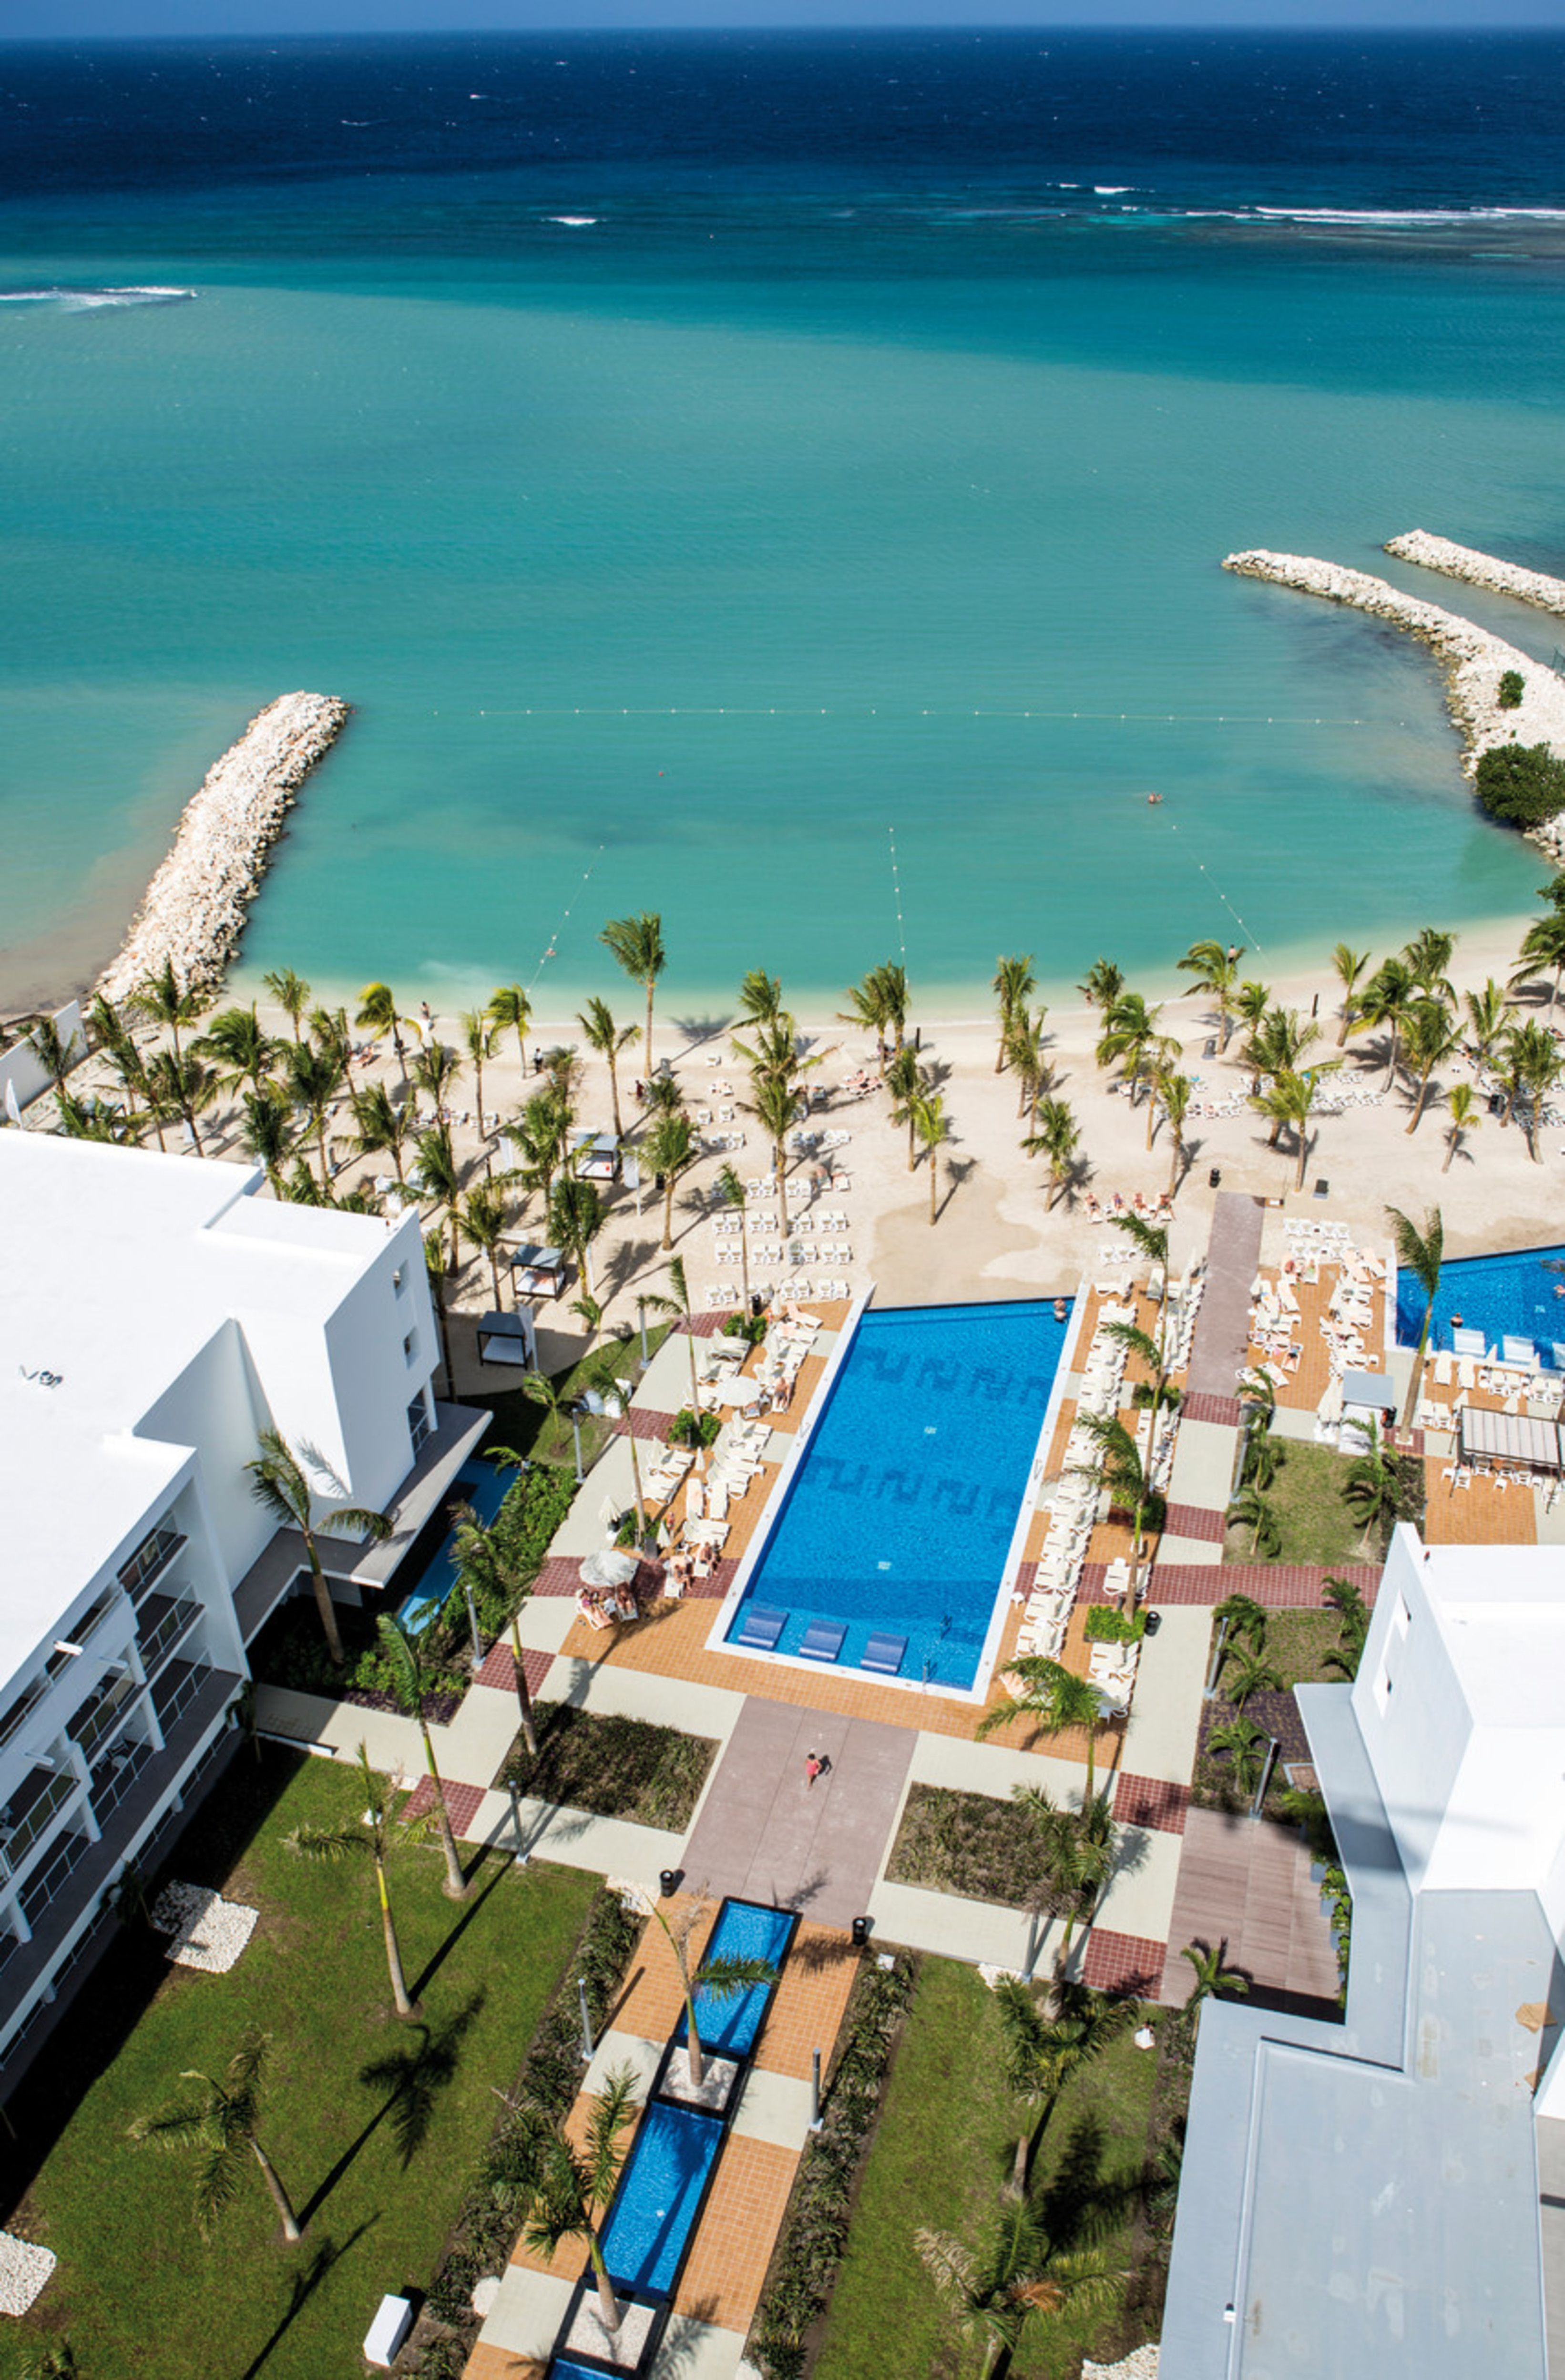 Riu Palace Jamaica - All Inclusive hotel in Montego Bay, Jamaica for Adults  Only.